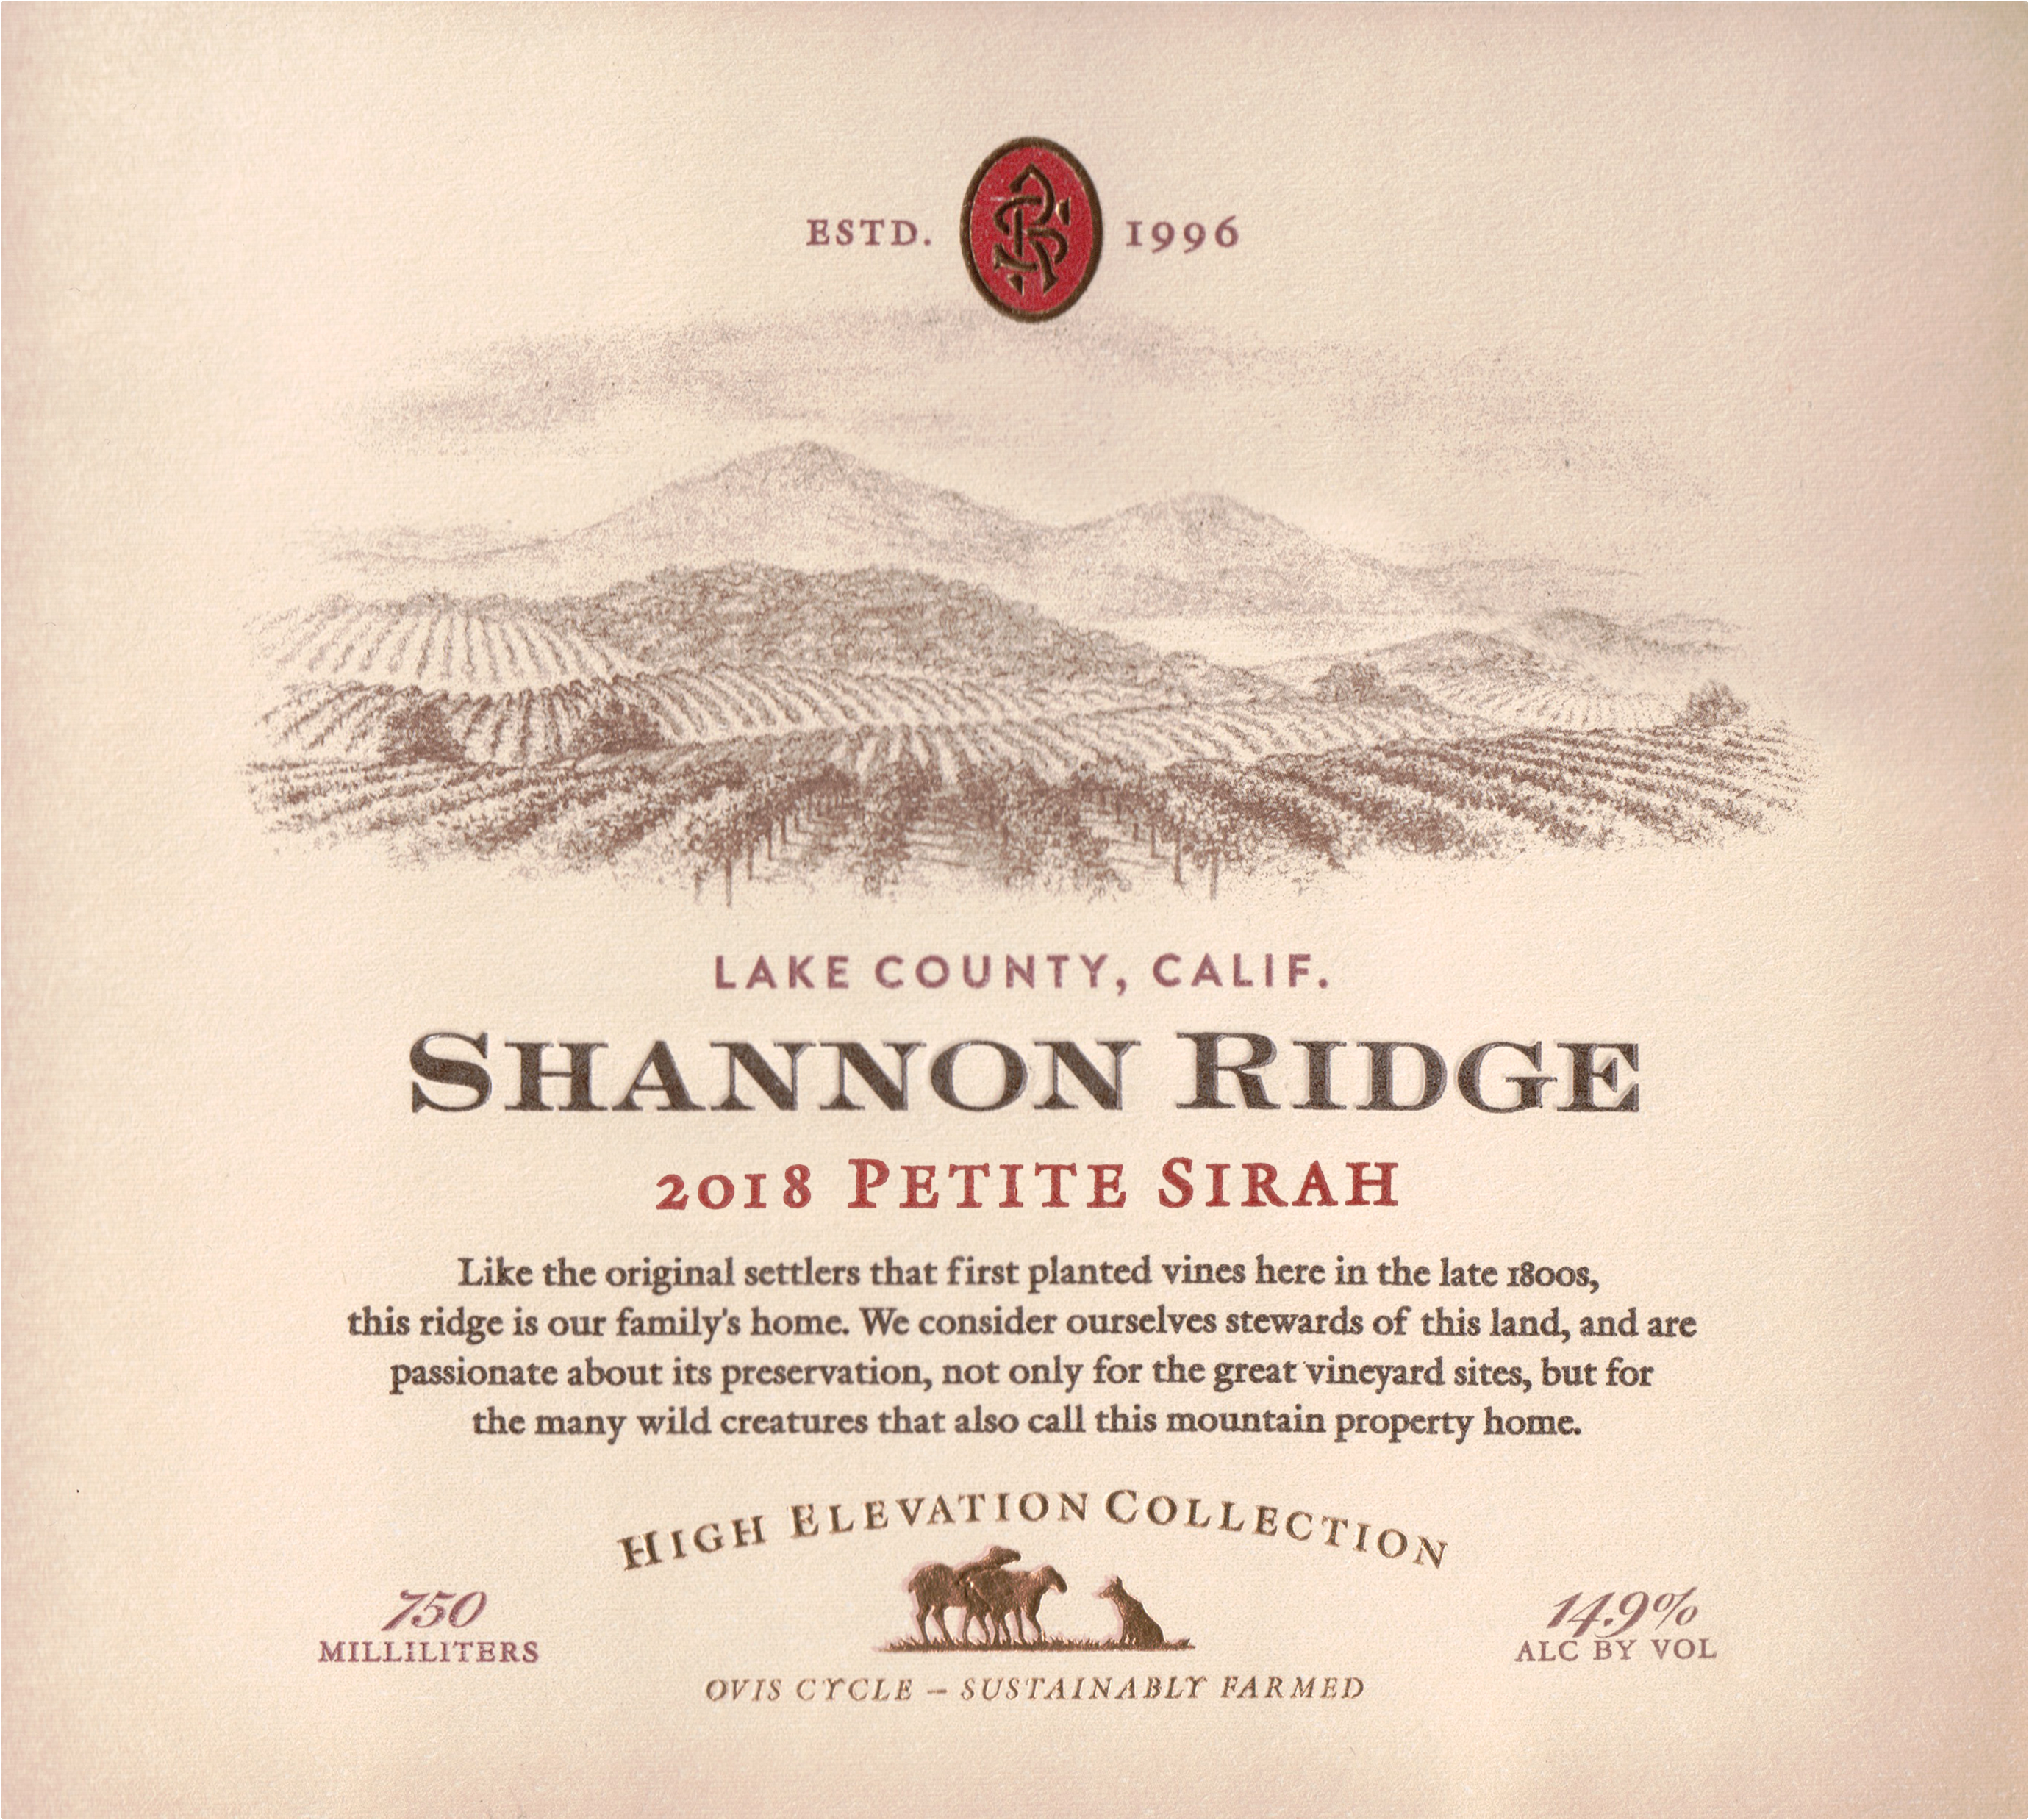 Shannon Ridge High Elevation Collection Petite Sirah 2018